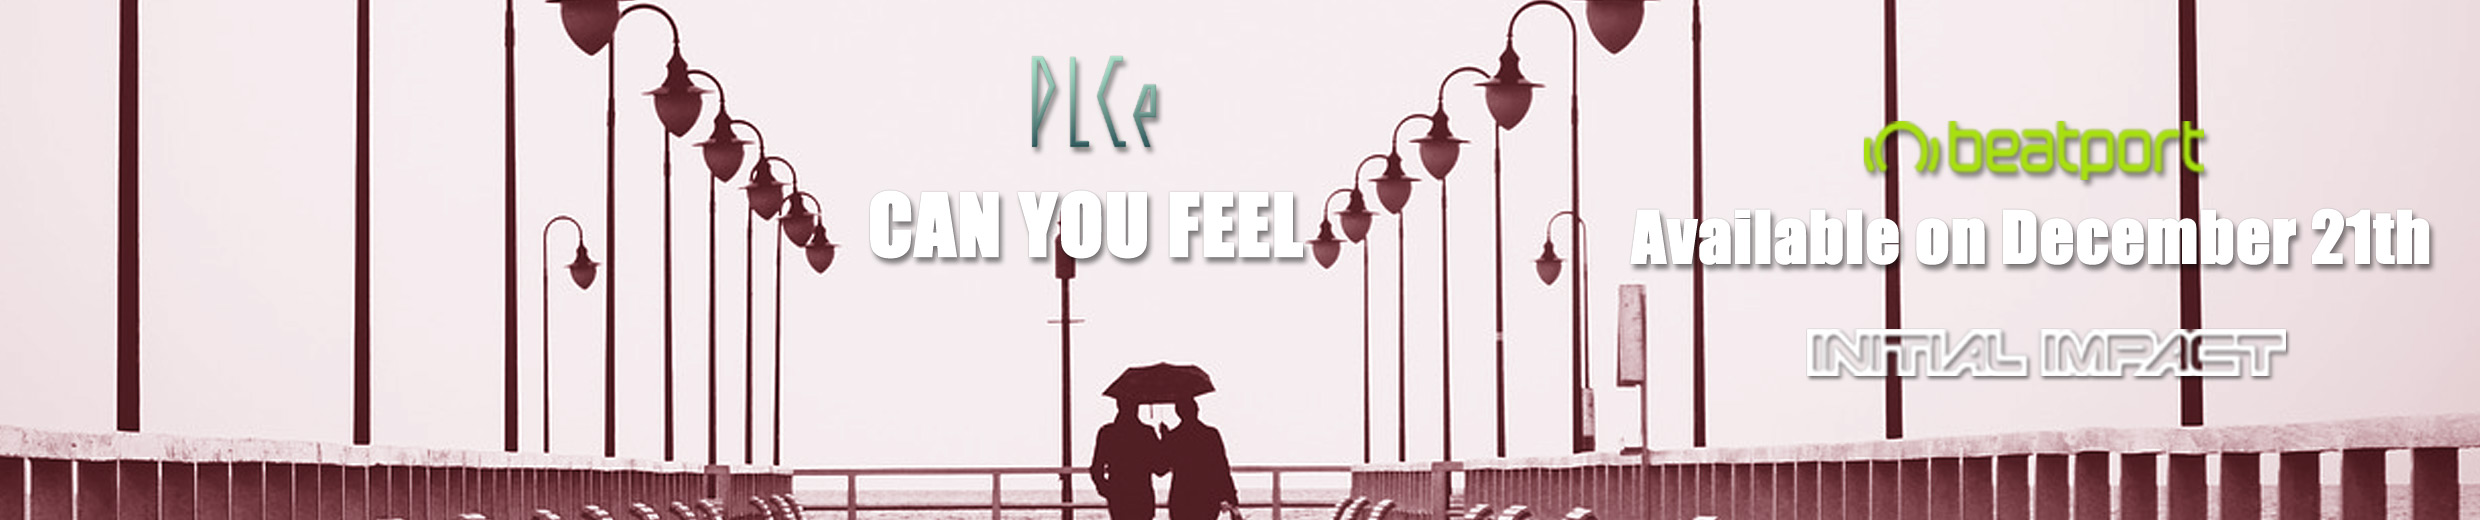 PLCe - Can You Feel